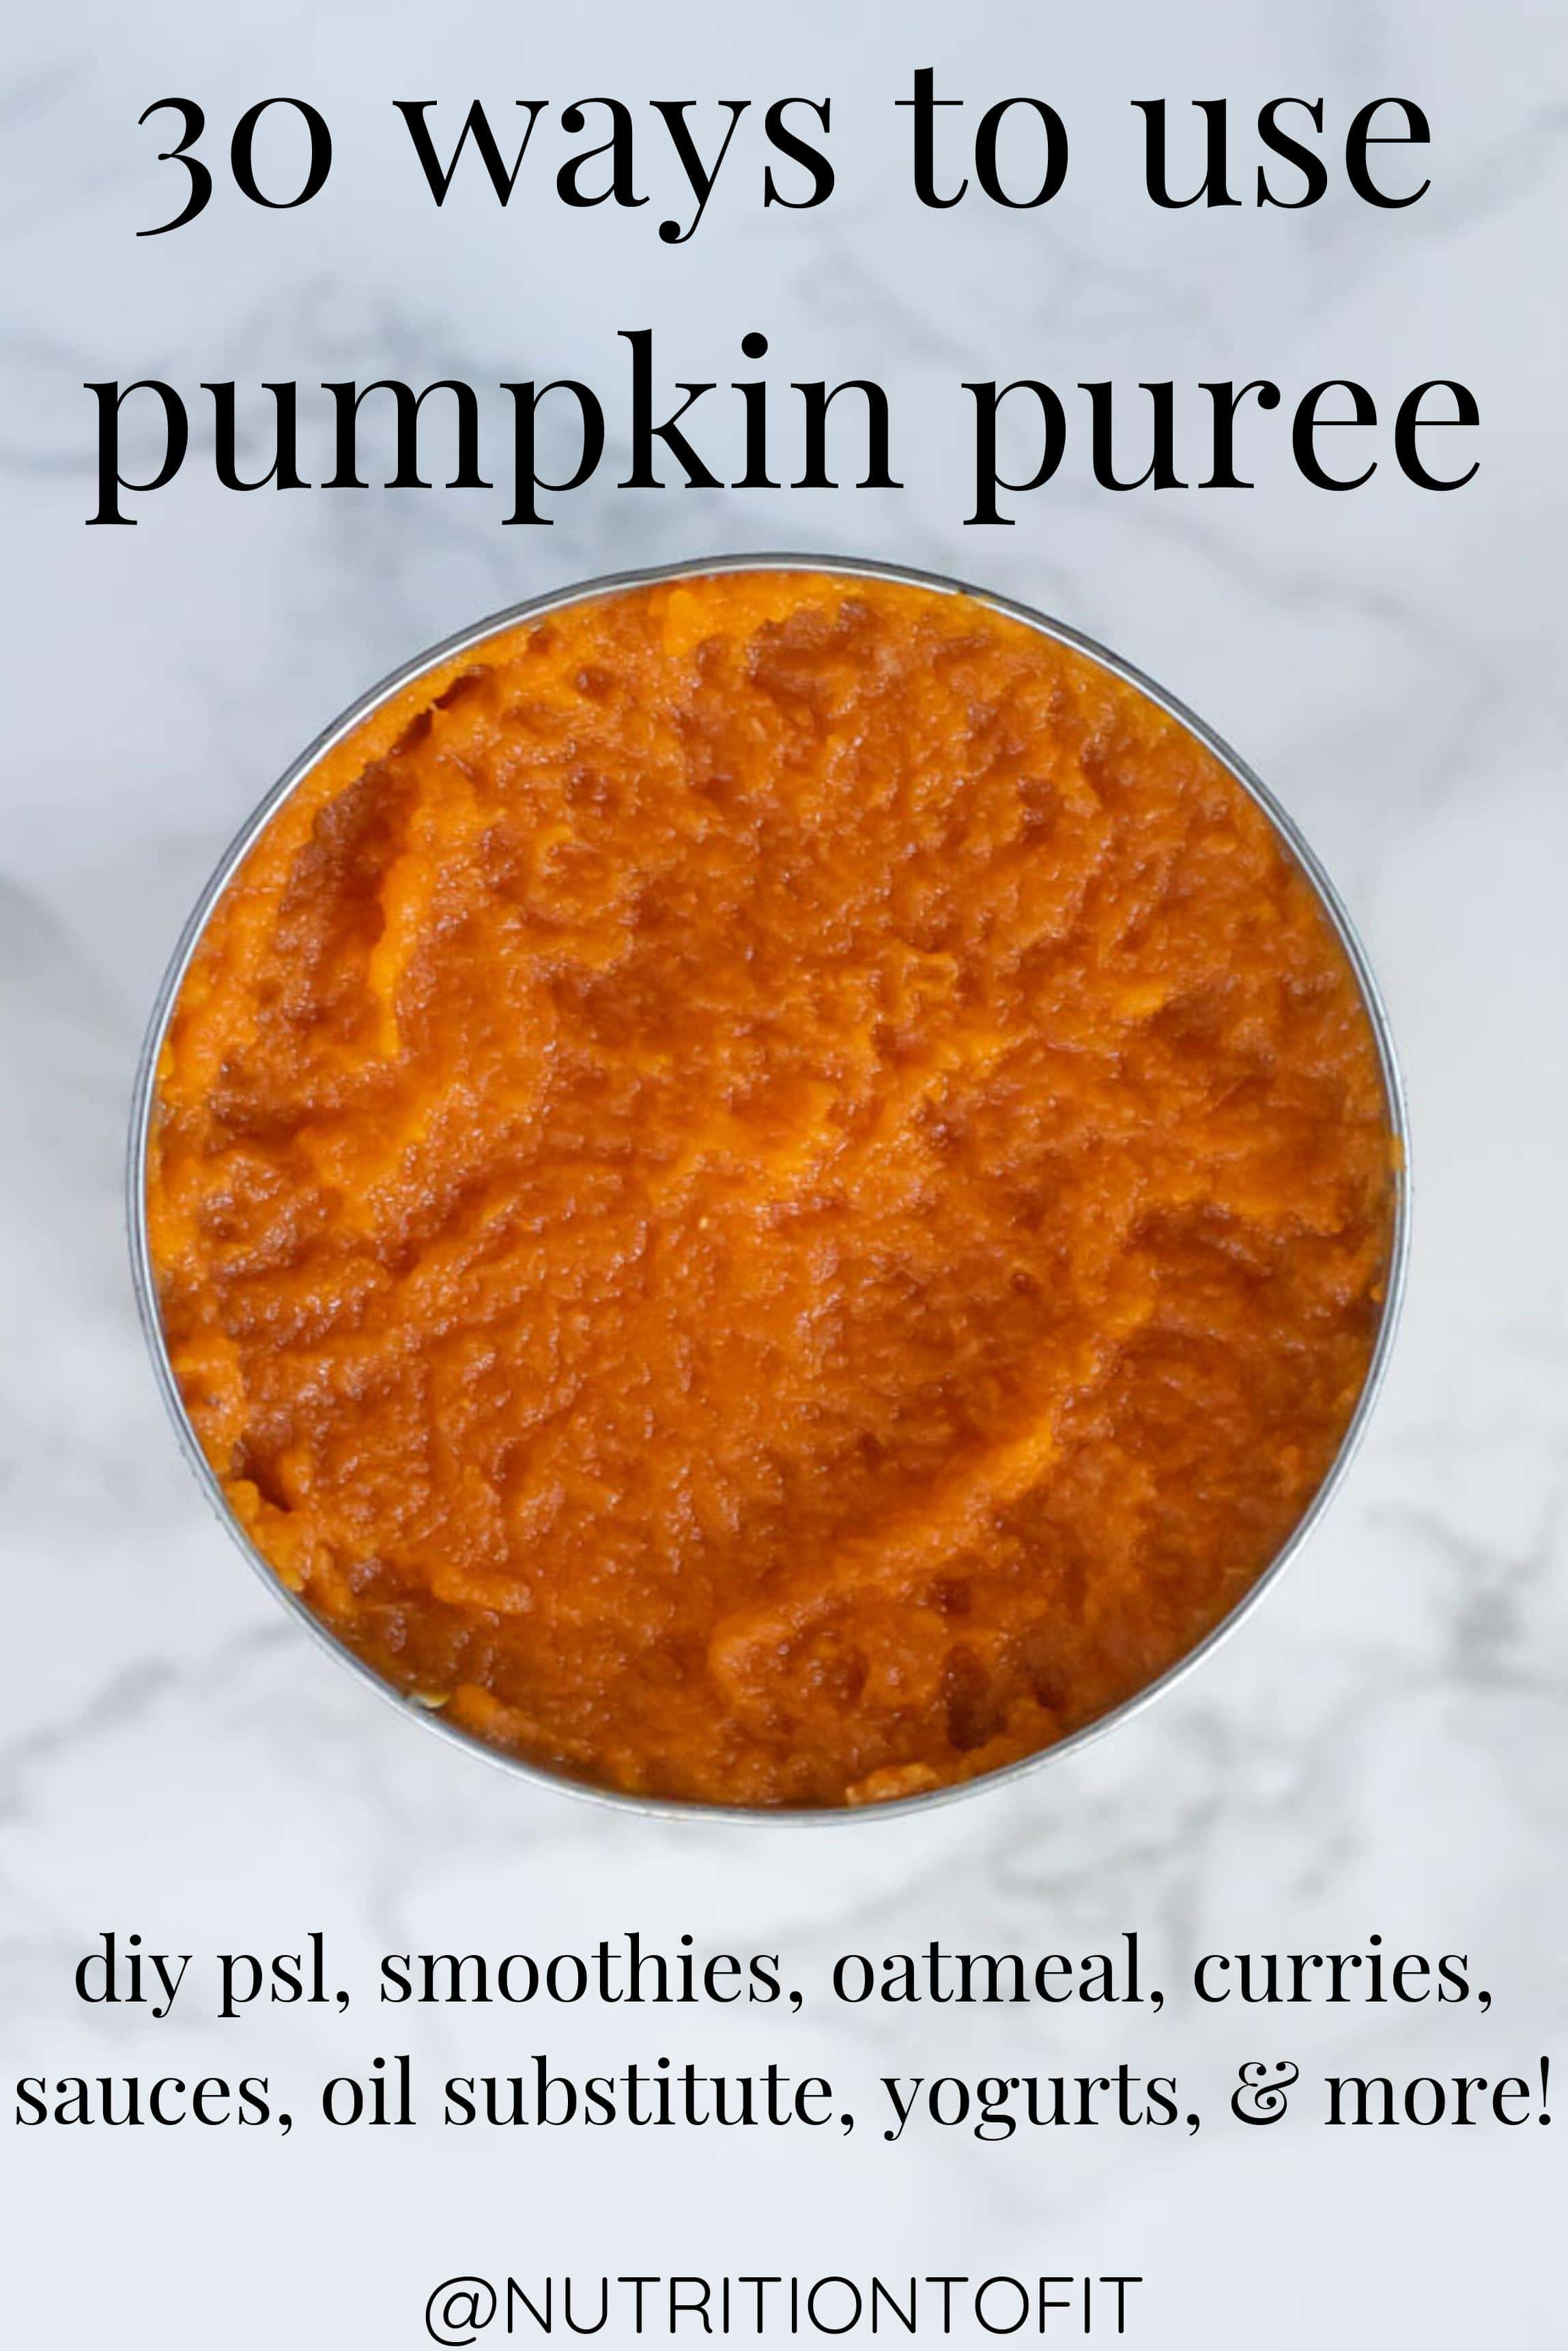 "Pinterest image of a can of pumpkin puree on a marble surface with text ""30 ways to use pumpkin puree"""